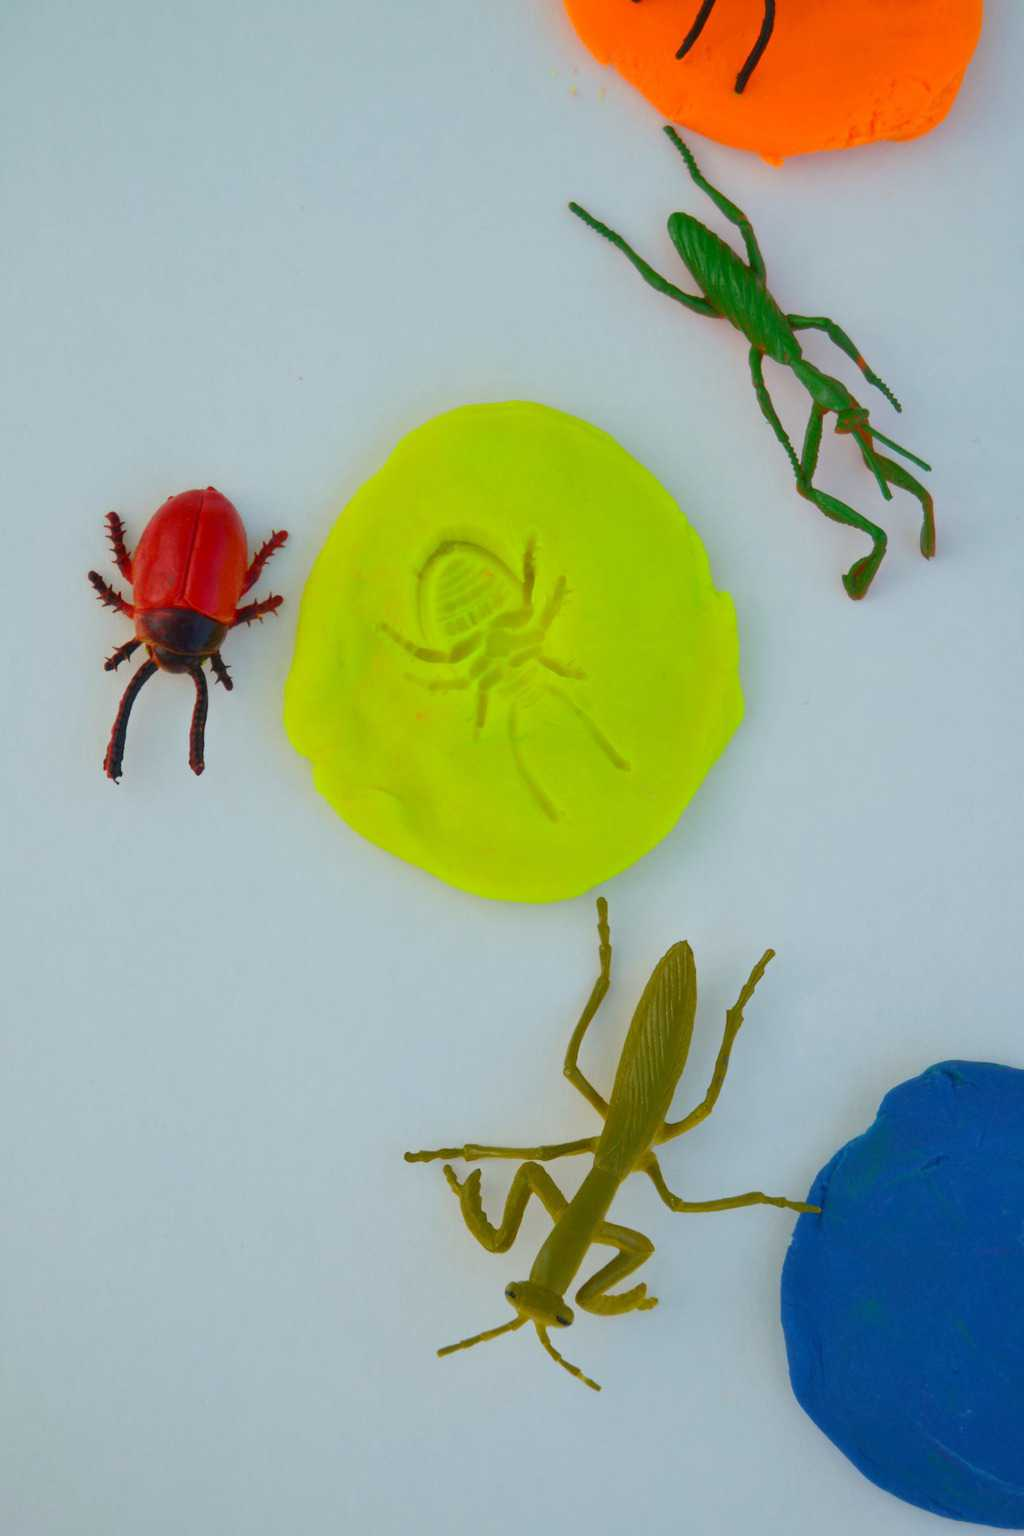 8 Bug Activities For Kids To Keep Them Active And Entertained